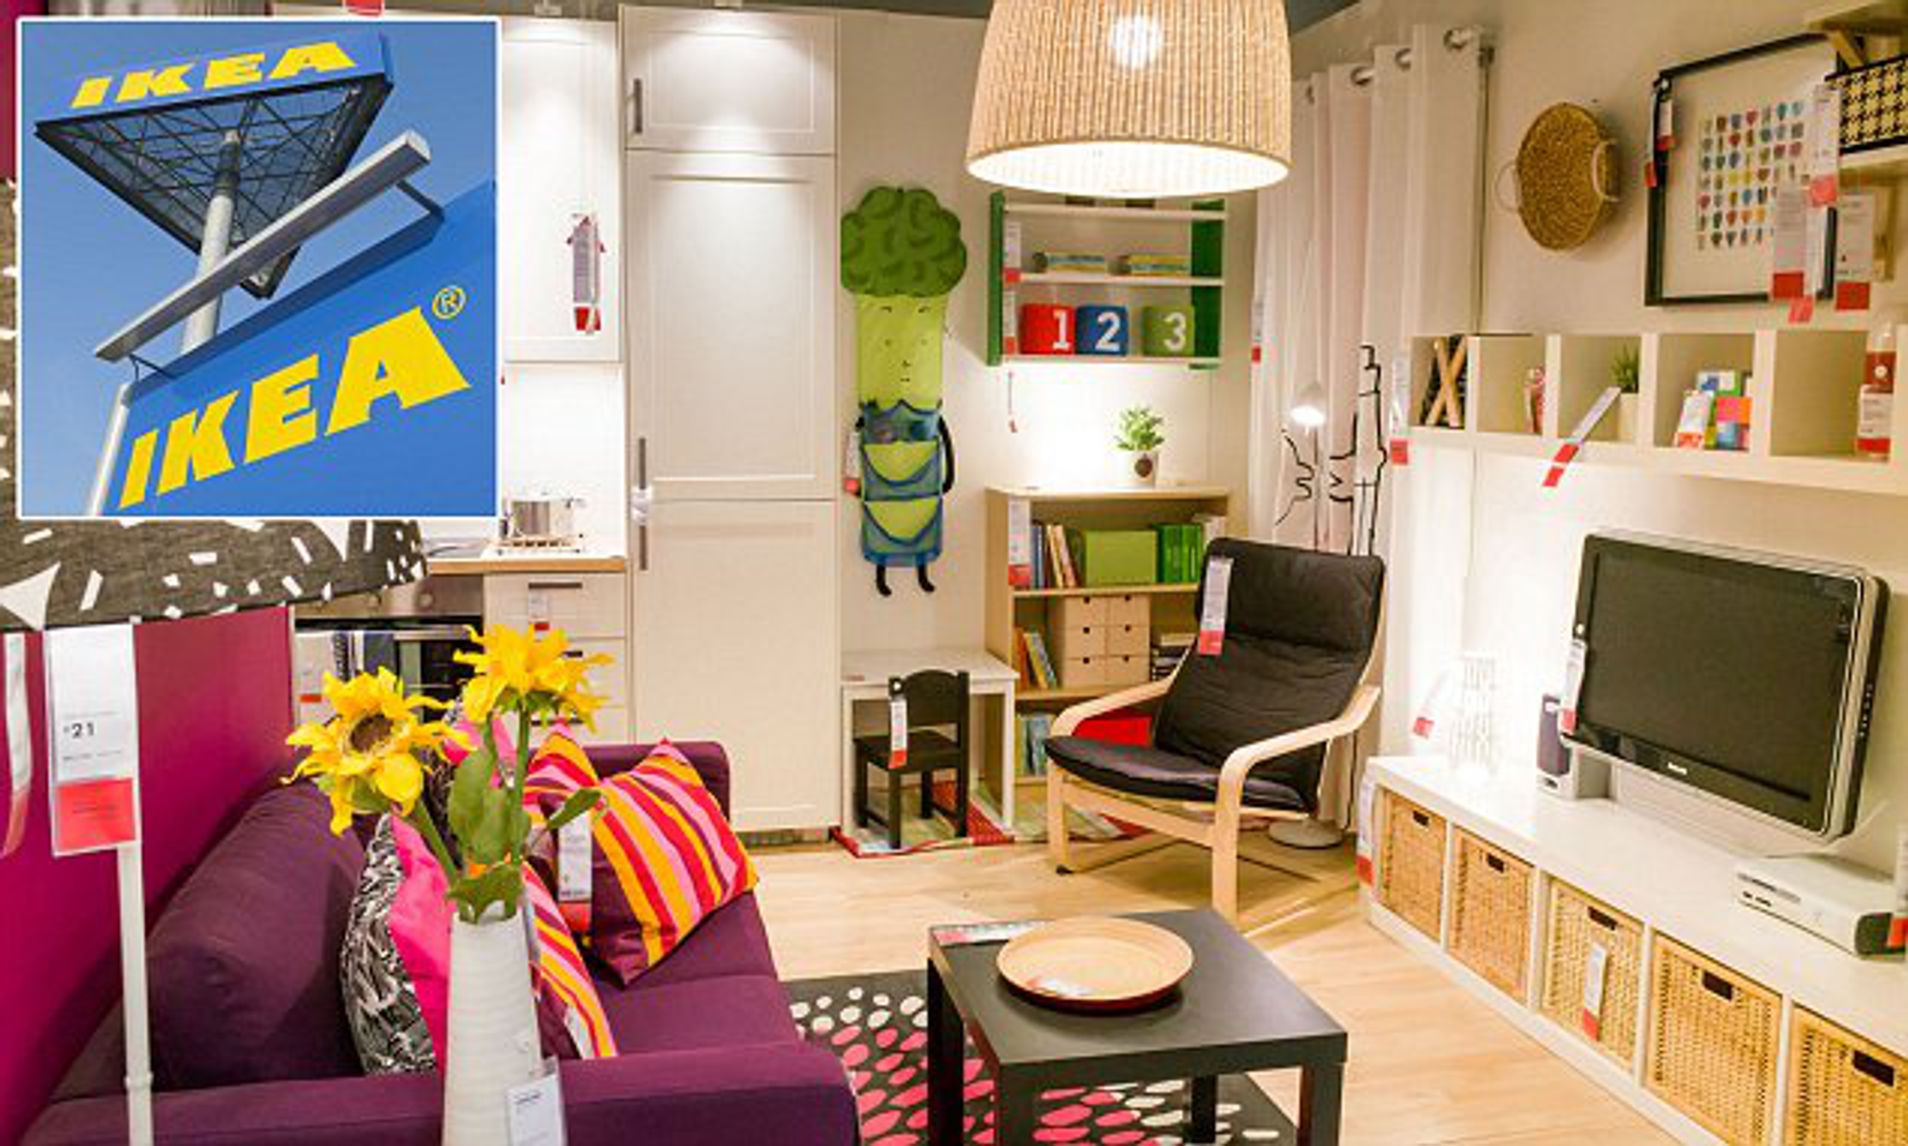 Ikea Reveals Plans To Allow Customers To Shop Online Daily